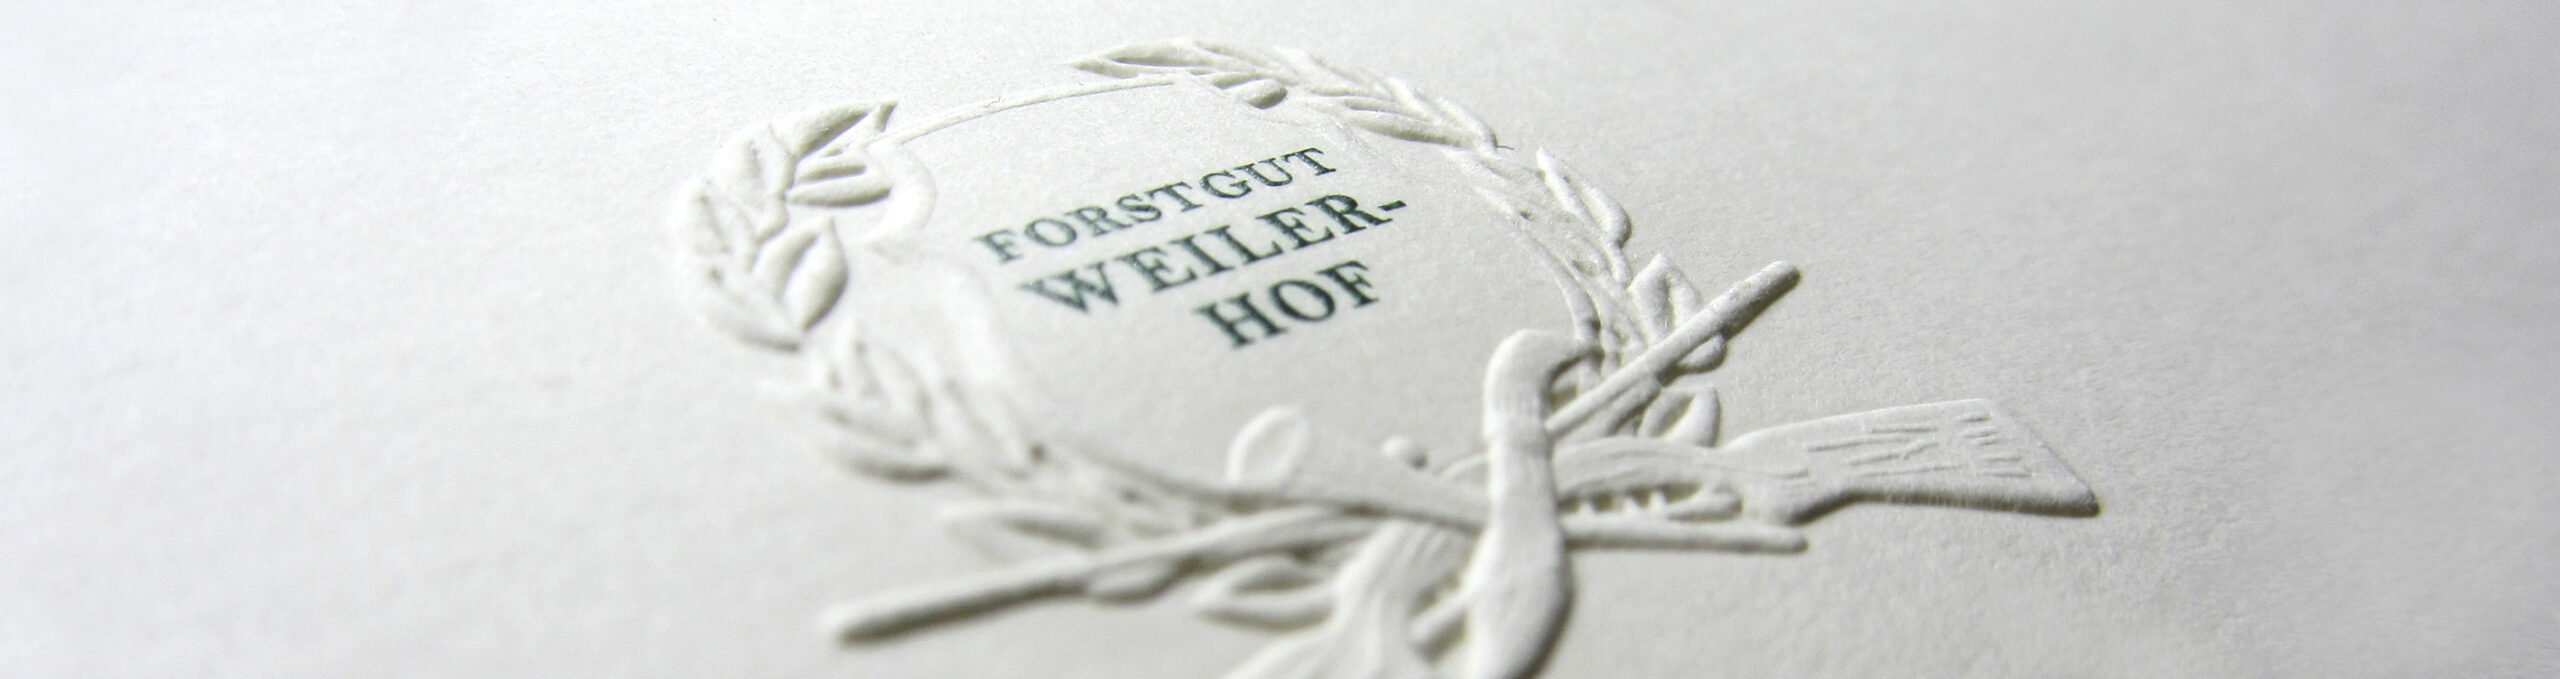 Blind Embossing Forest Property Weilerhof